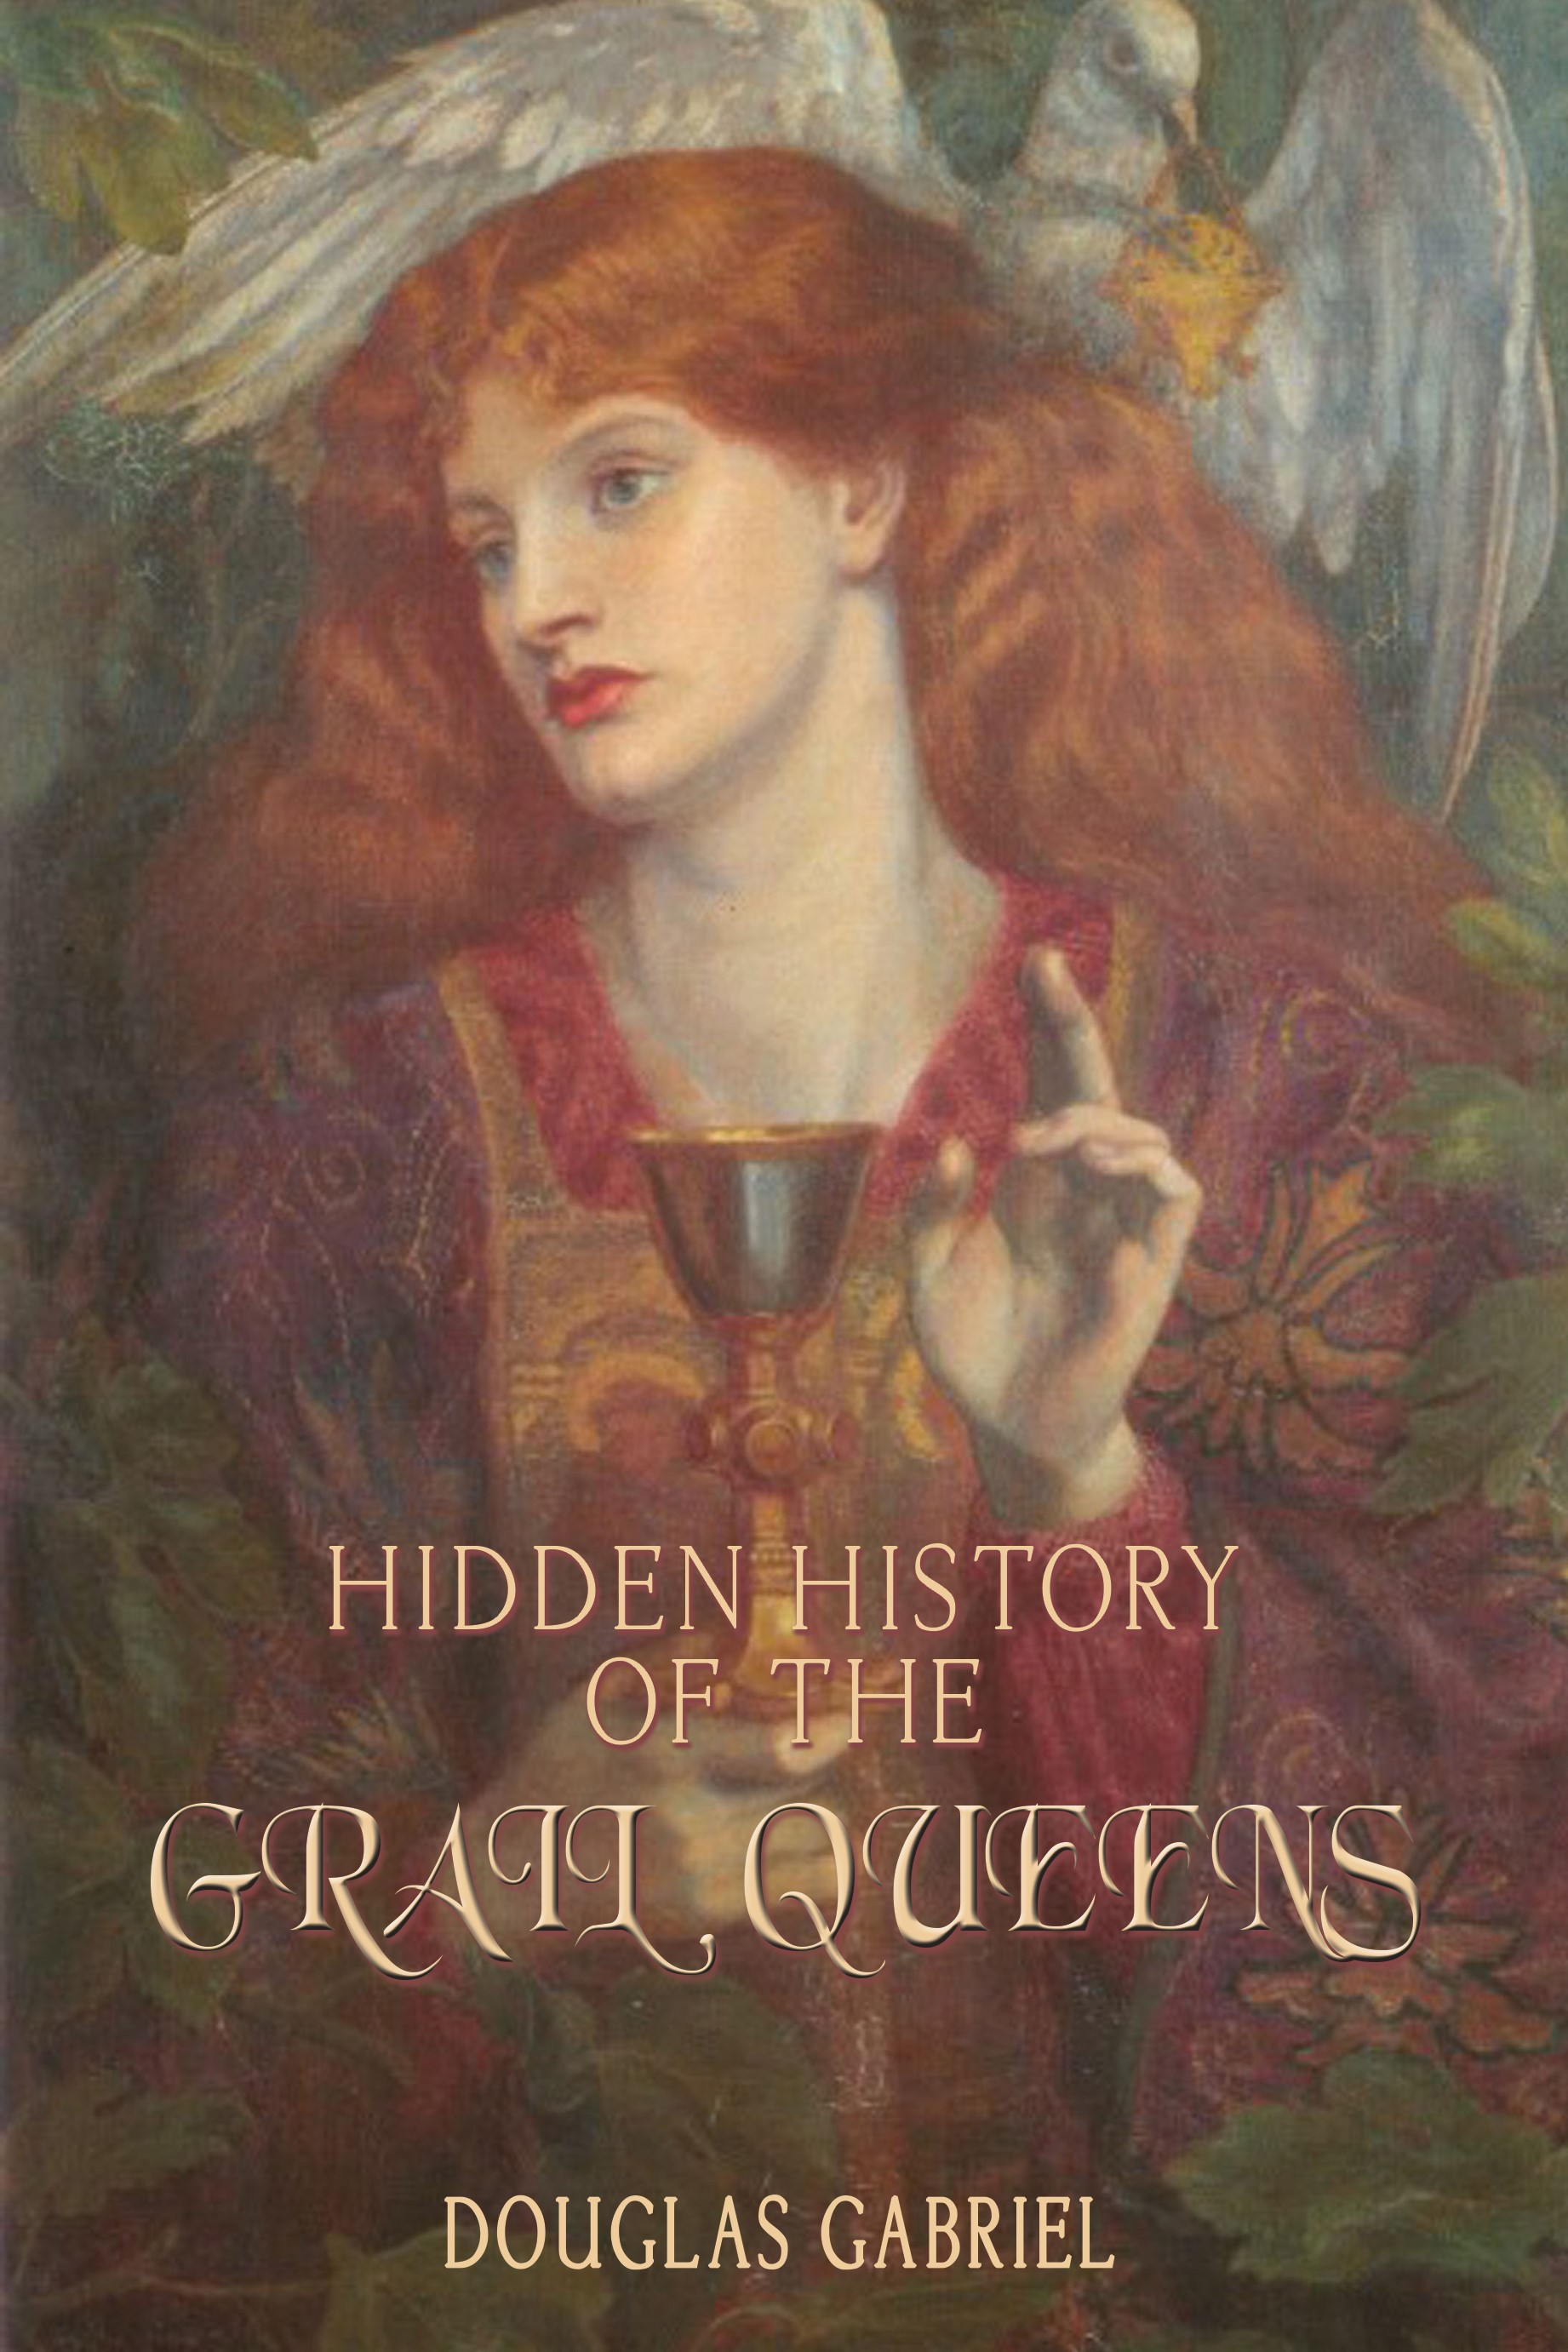 Final front cover